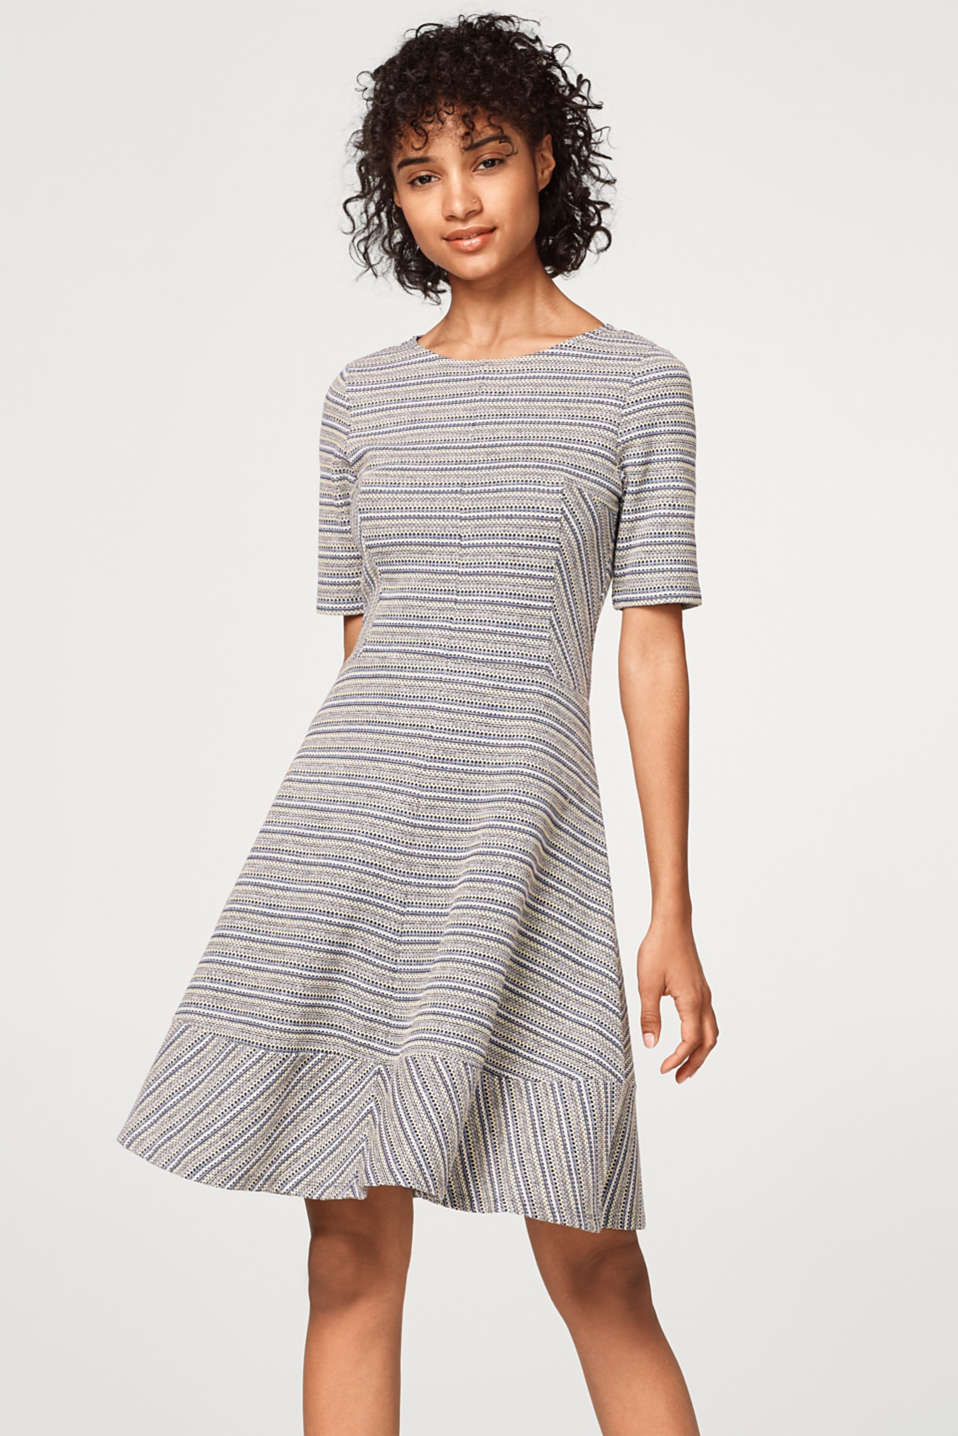 edc - A-line dress with patterned stripes